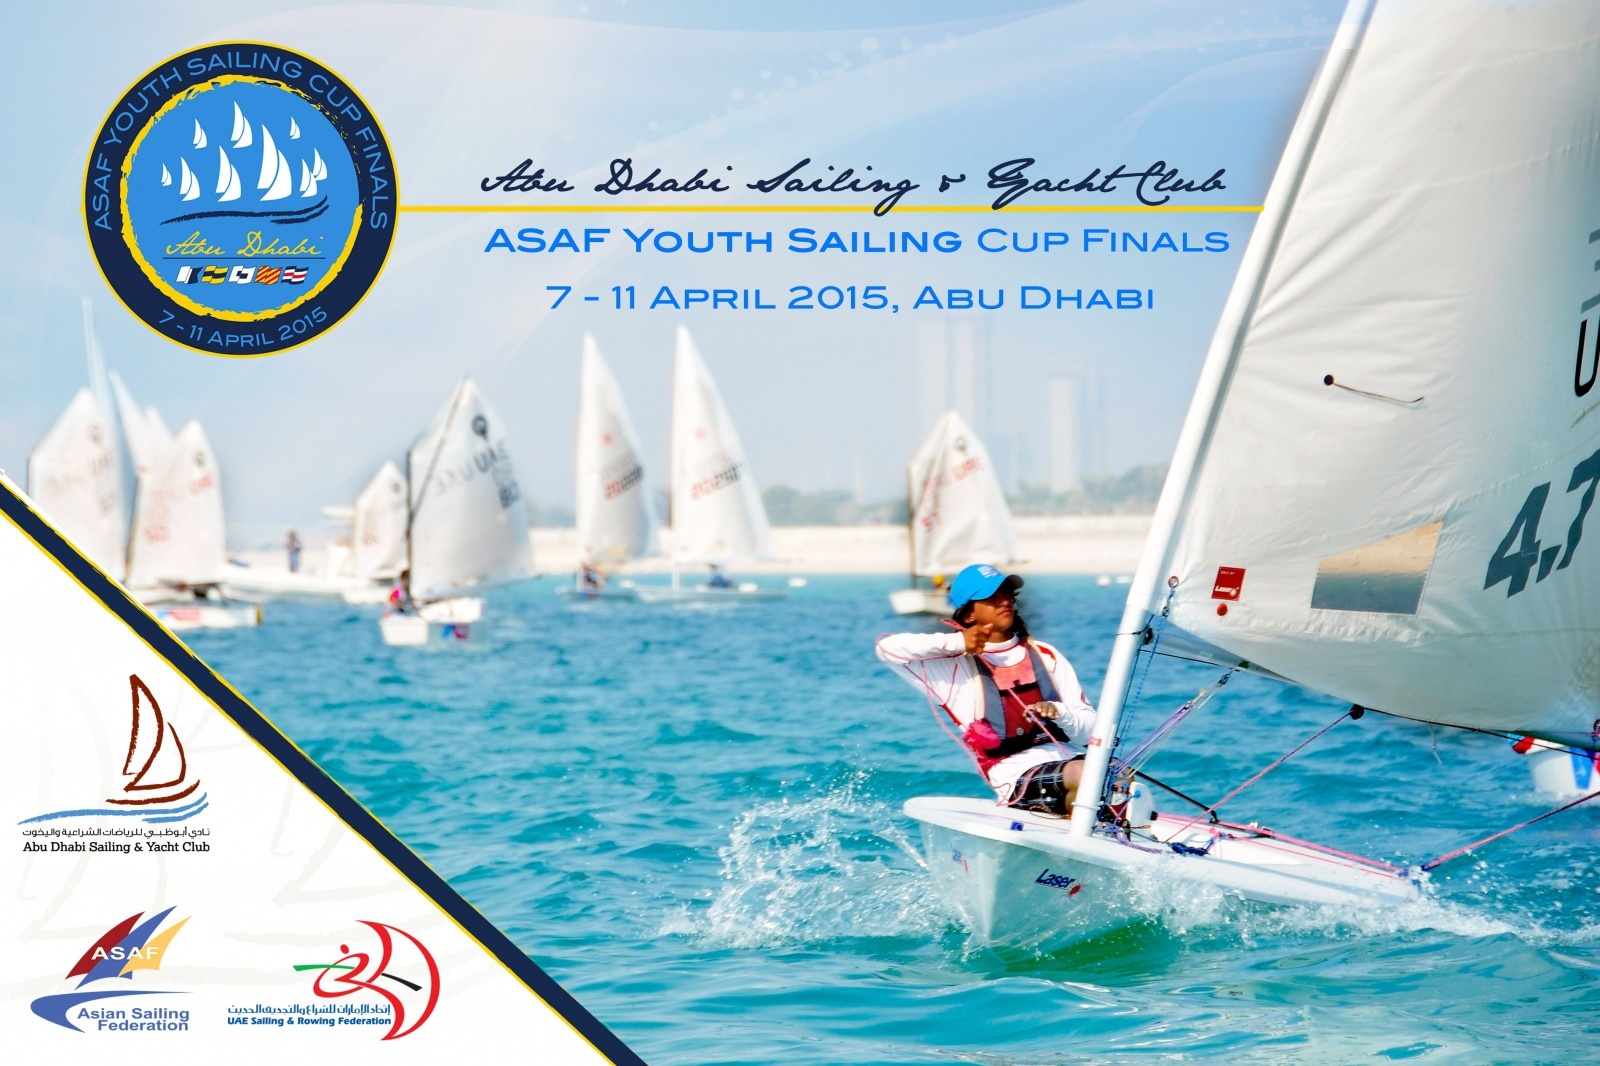 ASAF Youth Sailing Cup Finals 2015